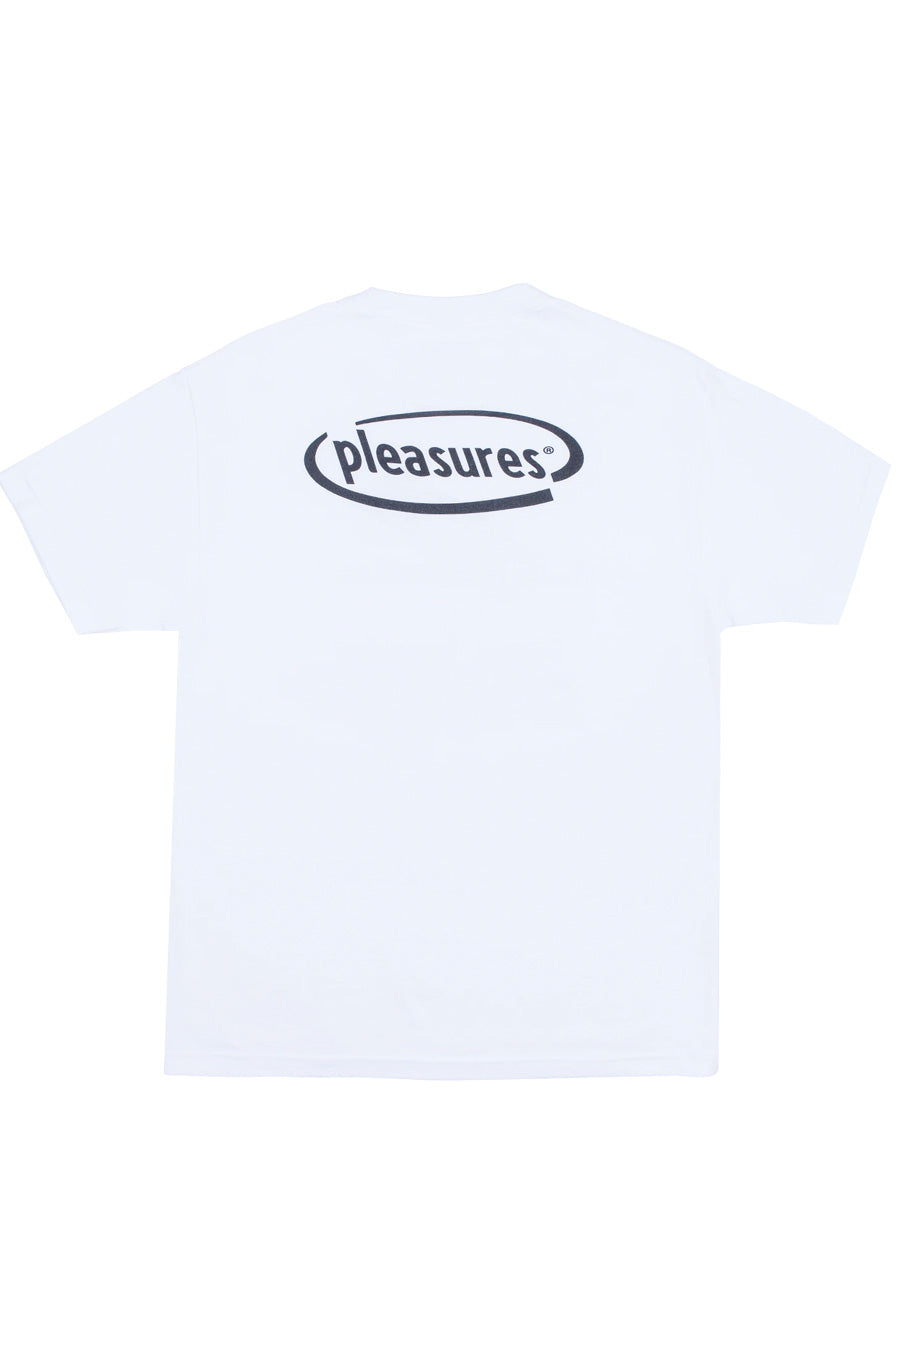 Pleasures - White Happier T-Shirt